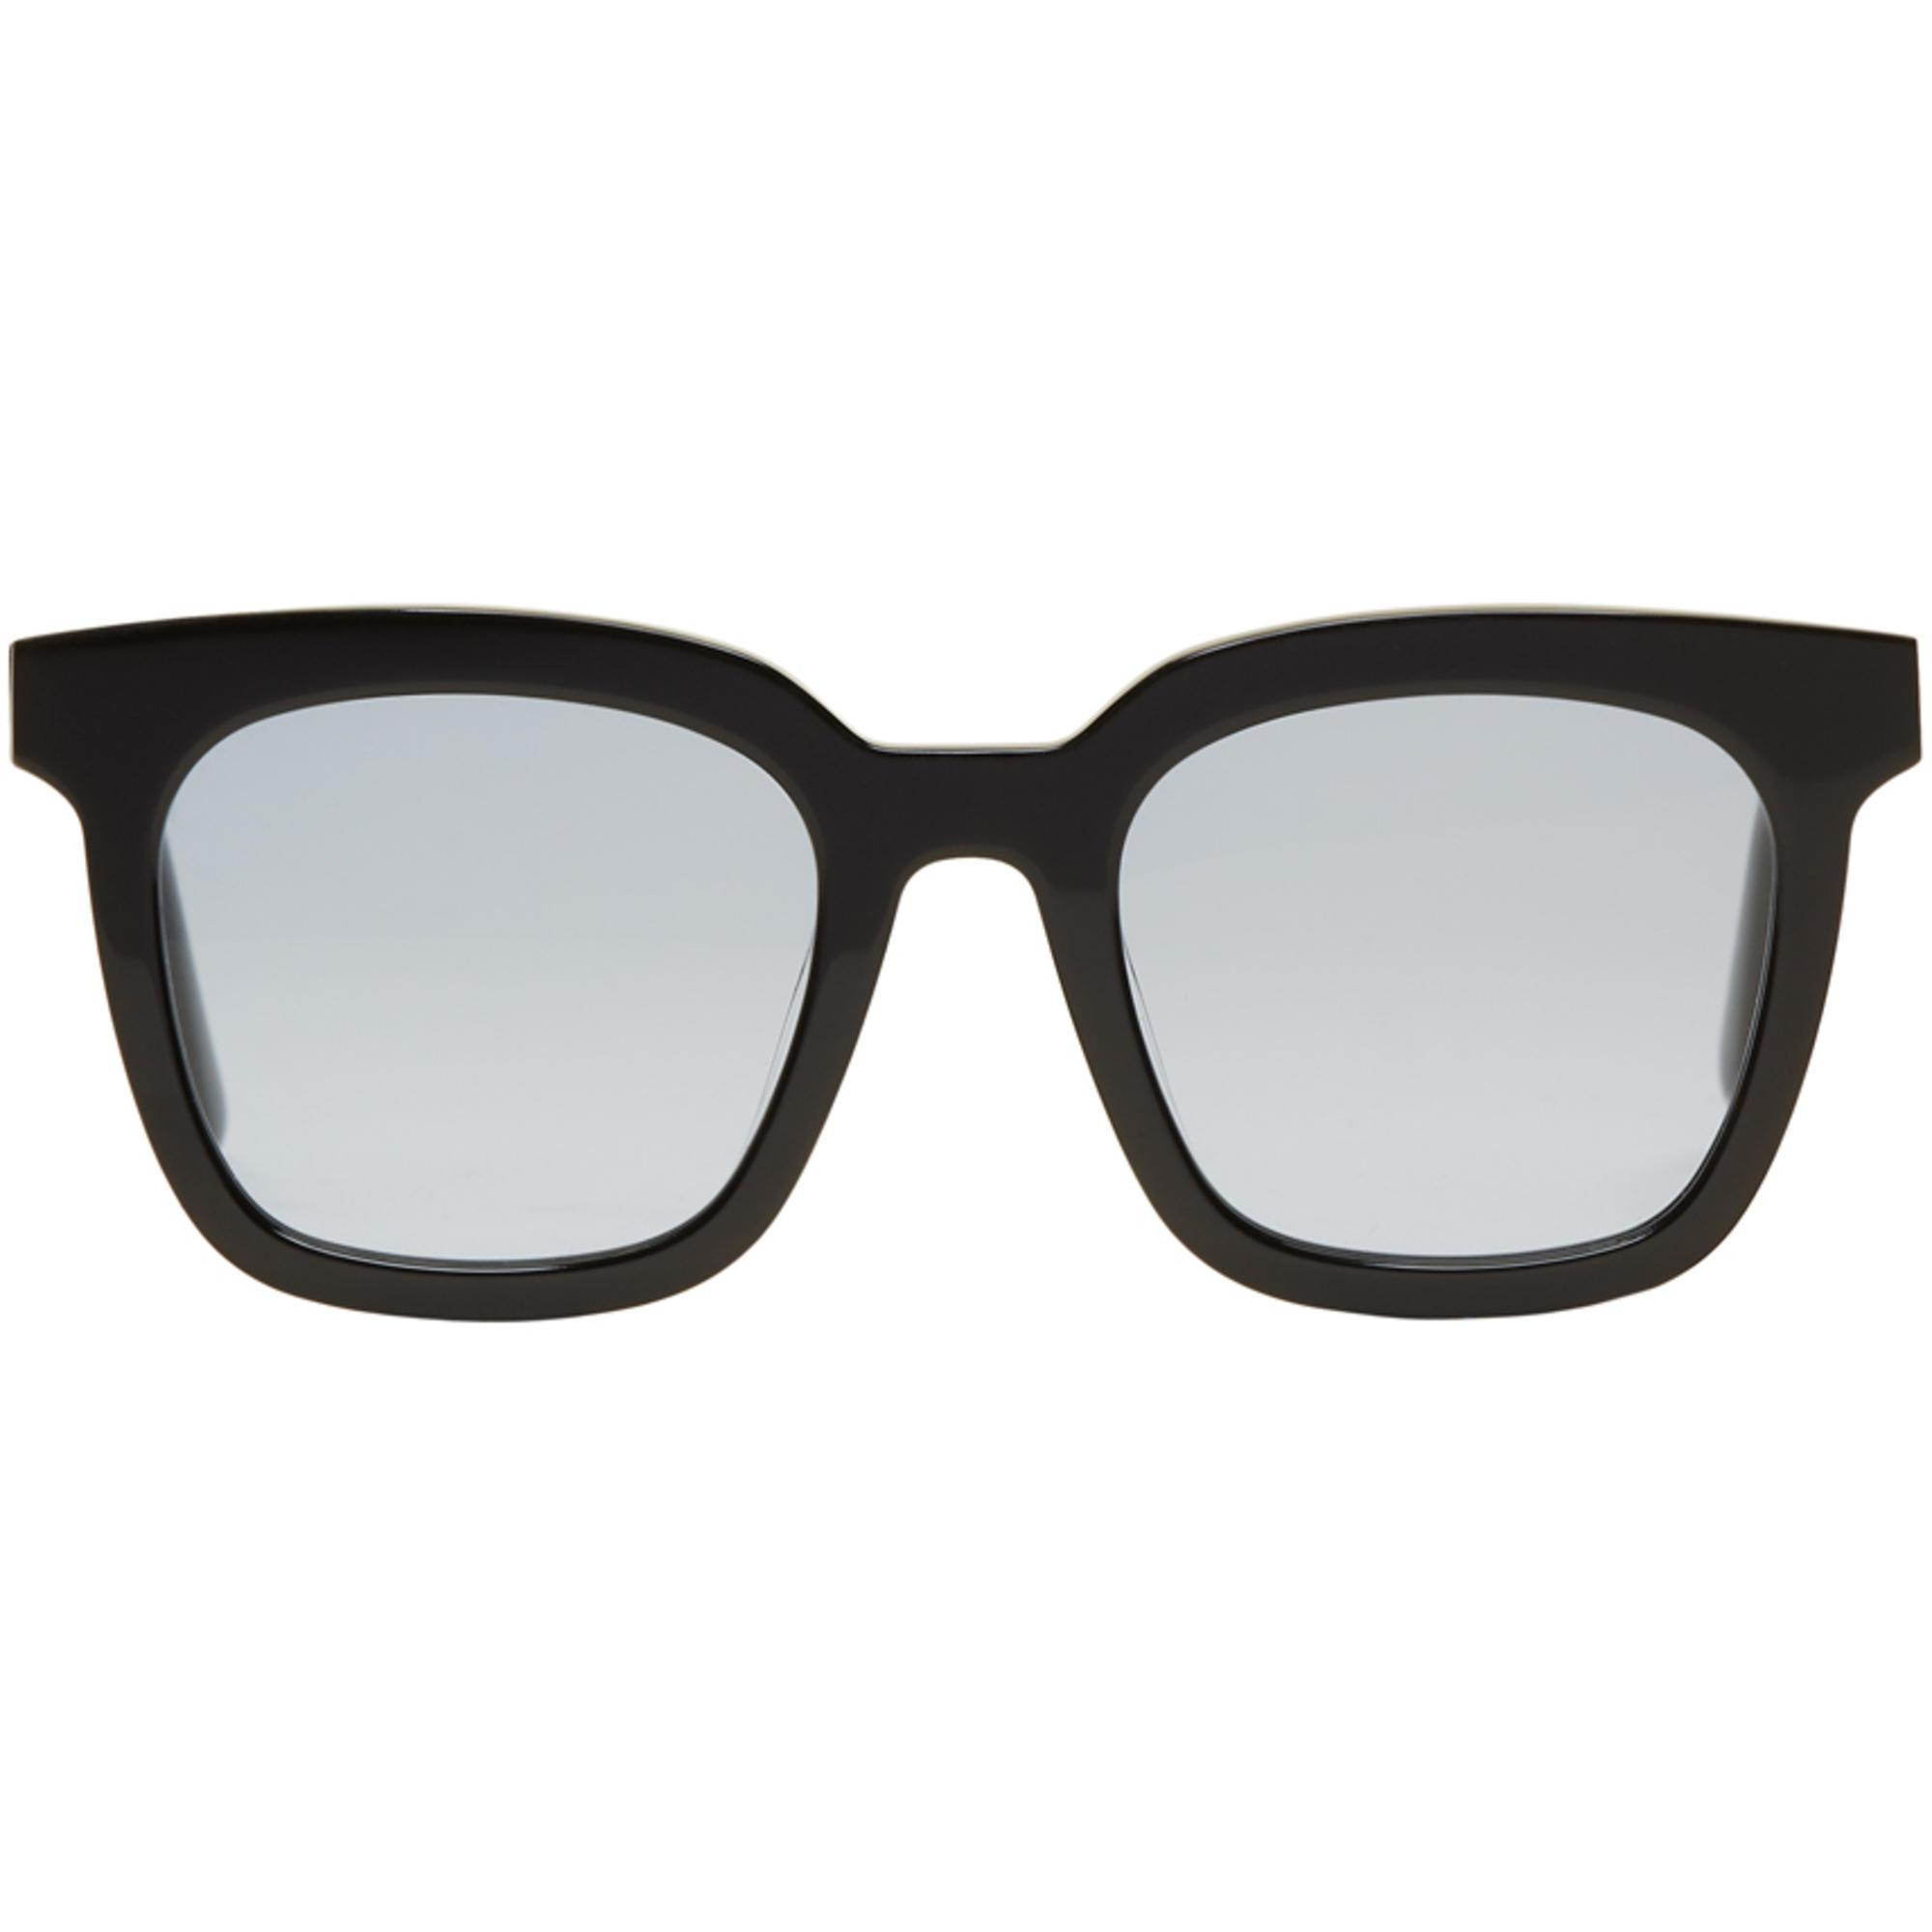 ca7d48633fe Lyst - Gentle Monster Black Large Finn Sunglasses in Black